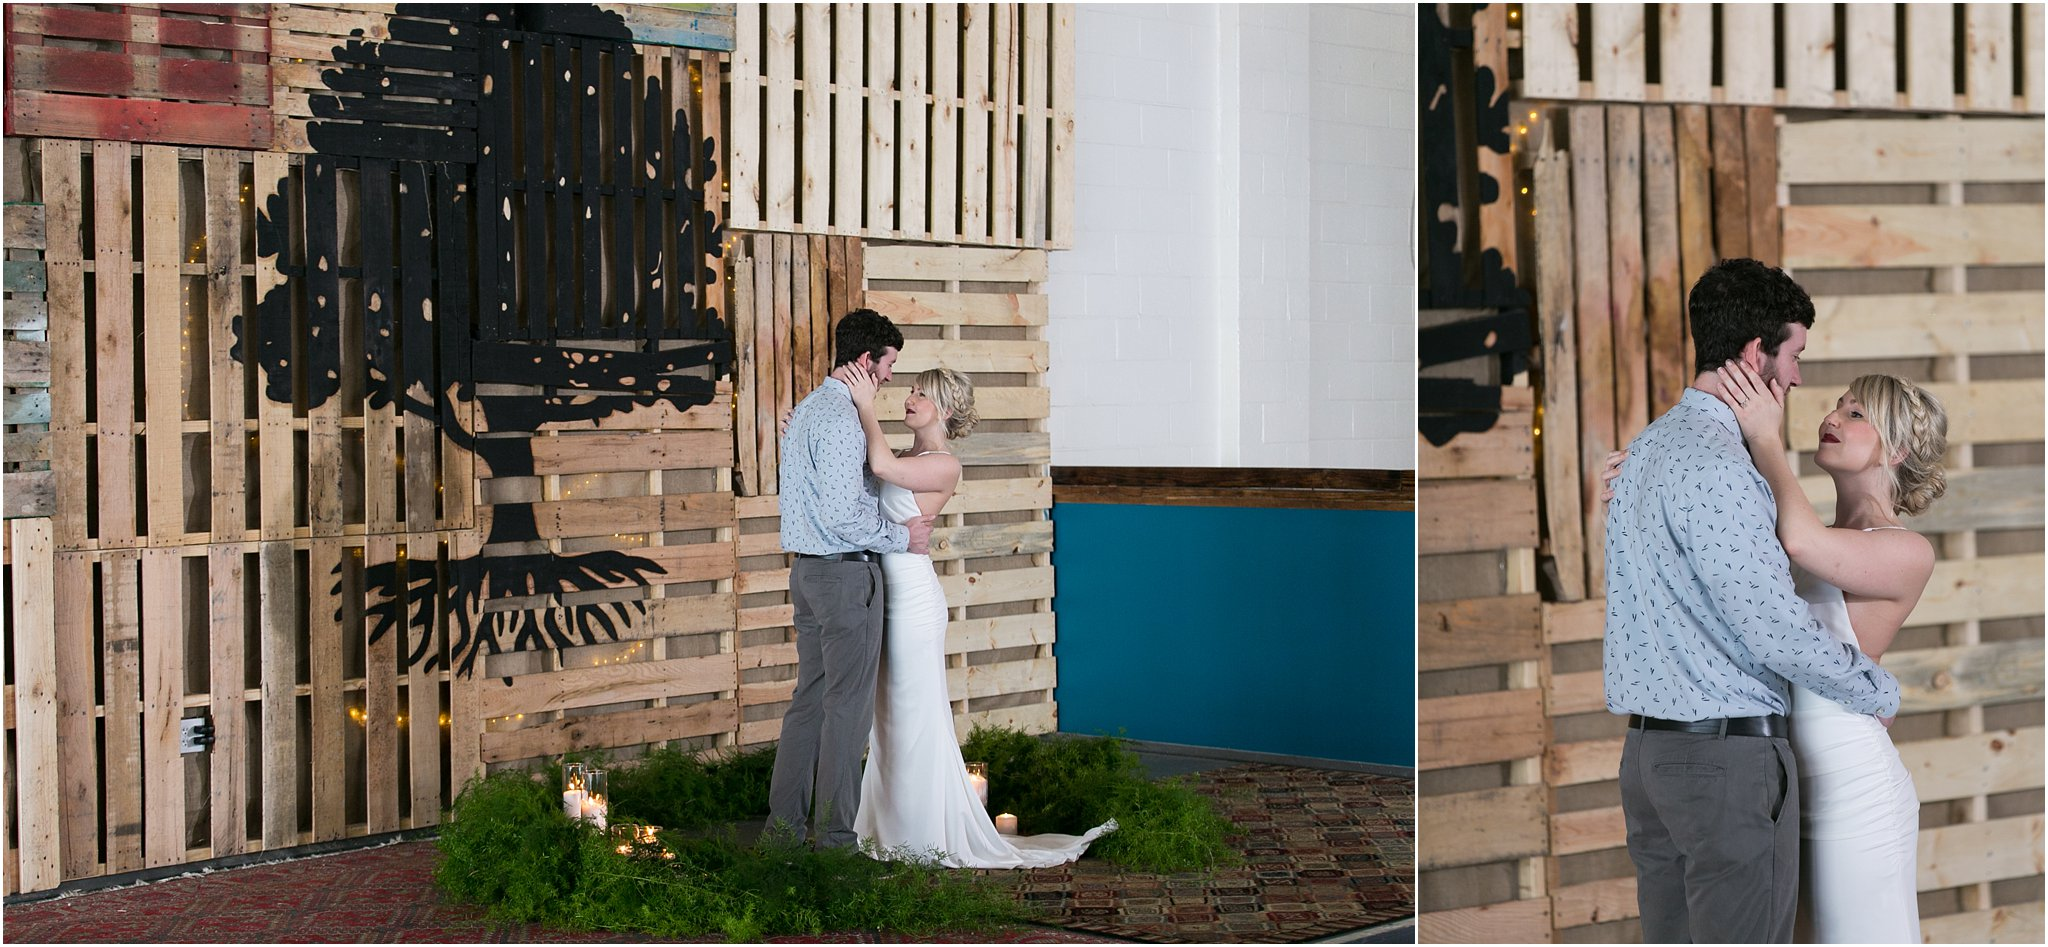 jessica_ryan_photography_oconnor_brewing_wedding_oconnor_brewing_co_norfolk_virginia_roost_flowers_blue_birds_garage__0783